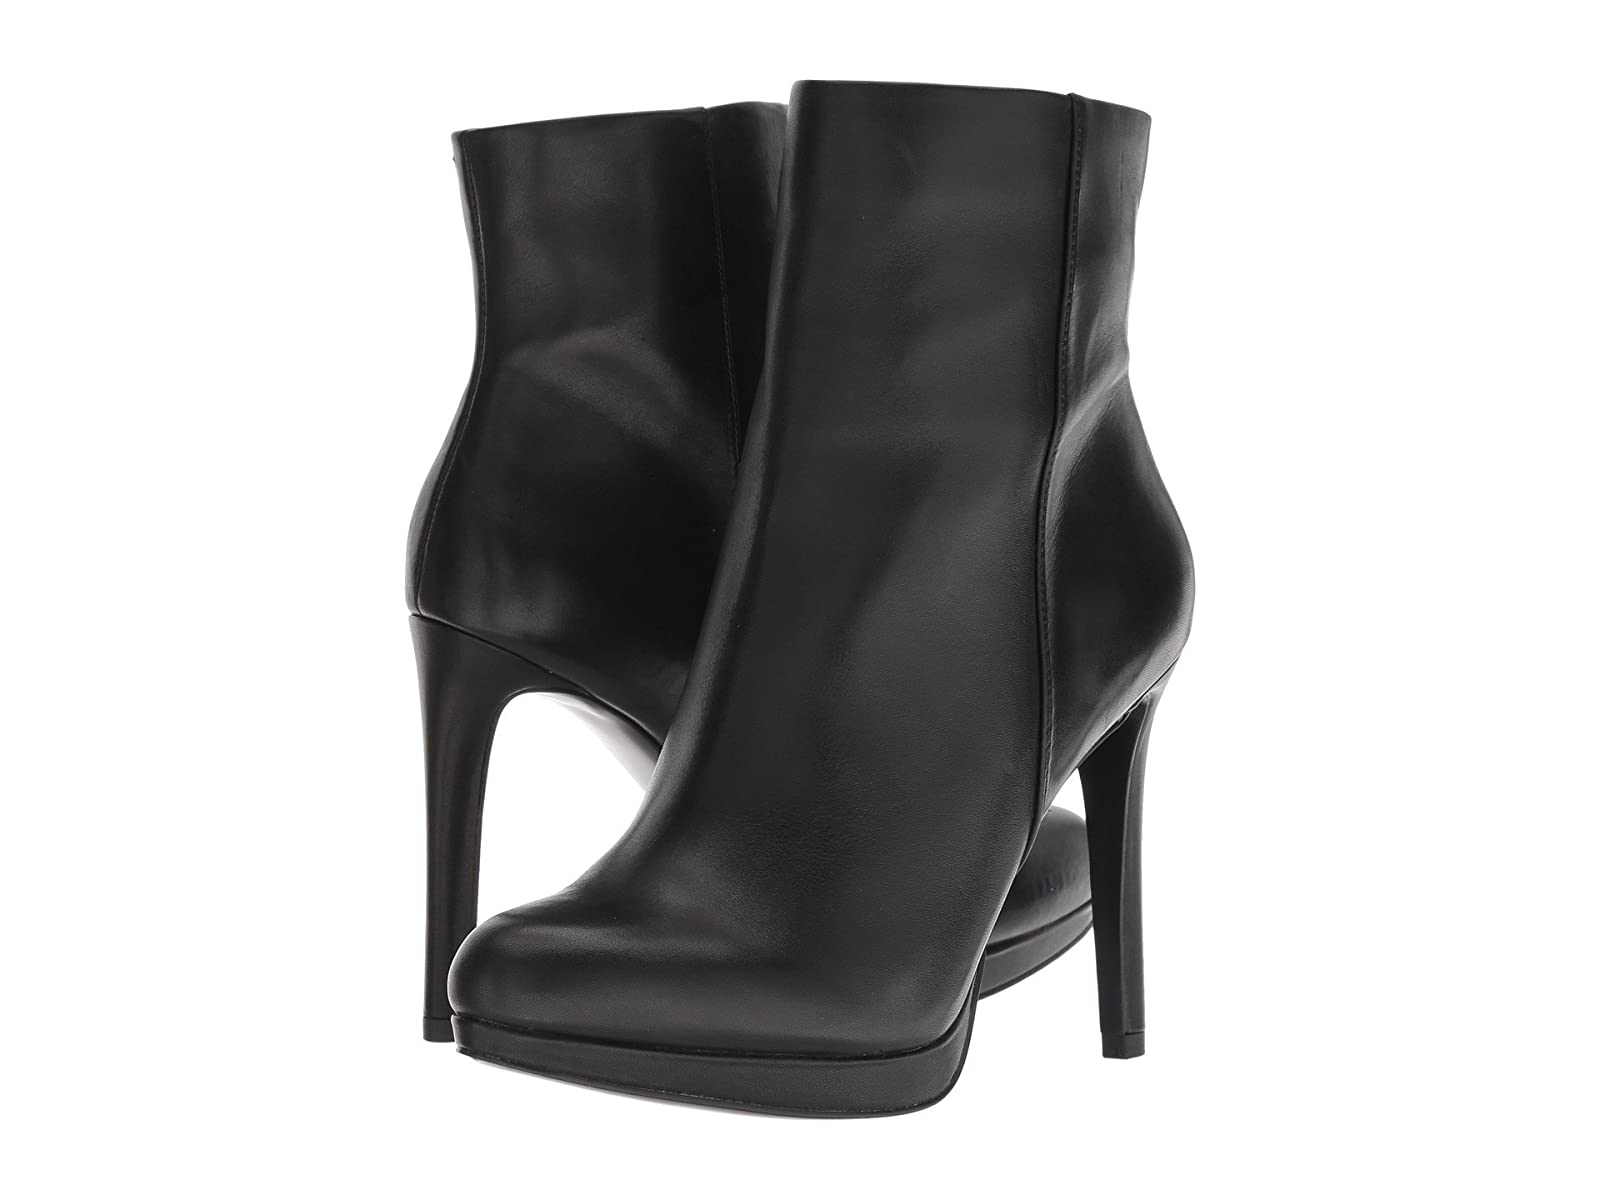 Nine West QuanetteEconomical and quality shoes